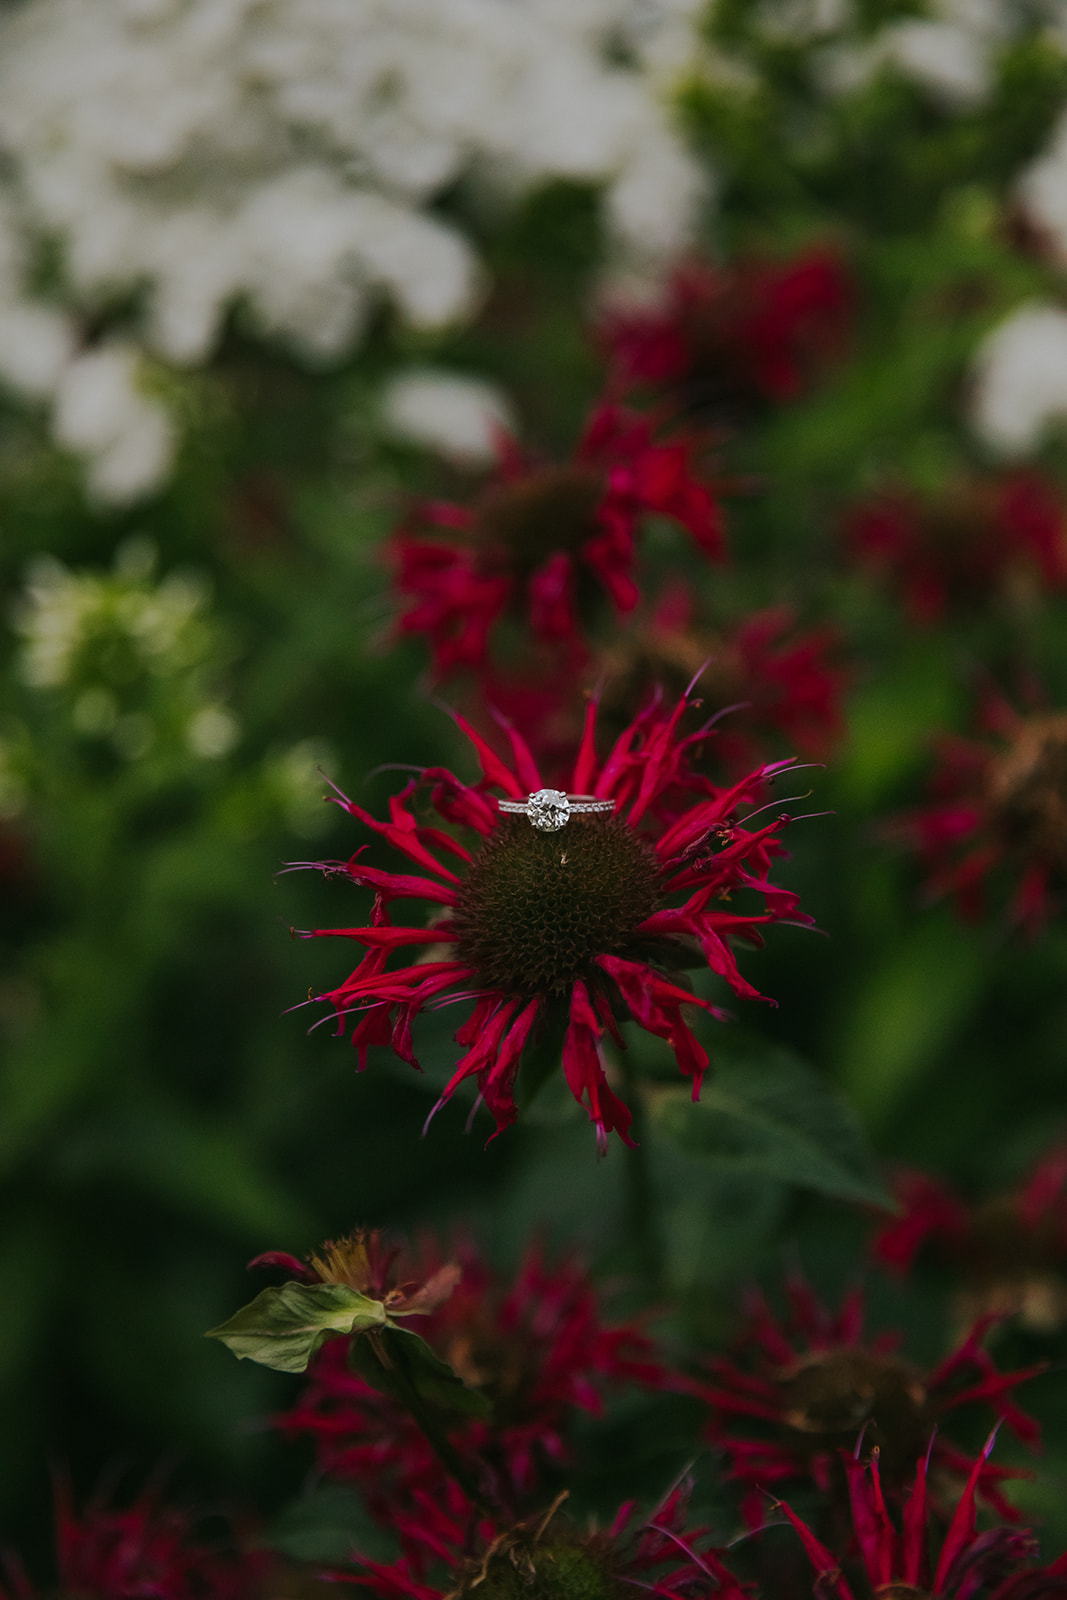 A ring sits on a flower in a Madison garden